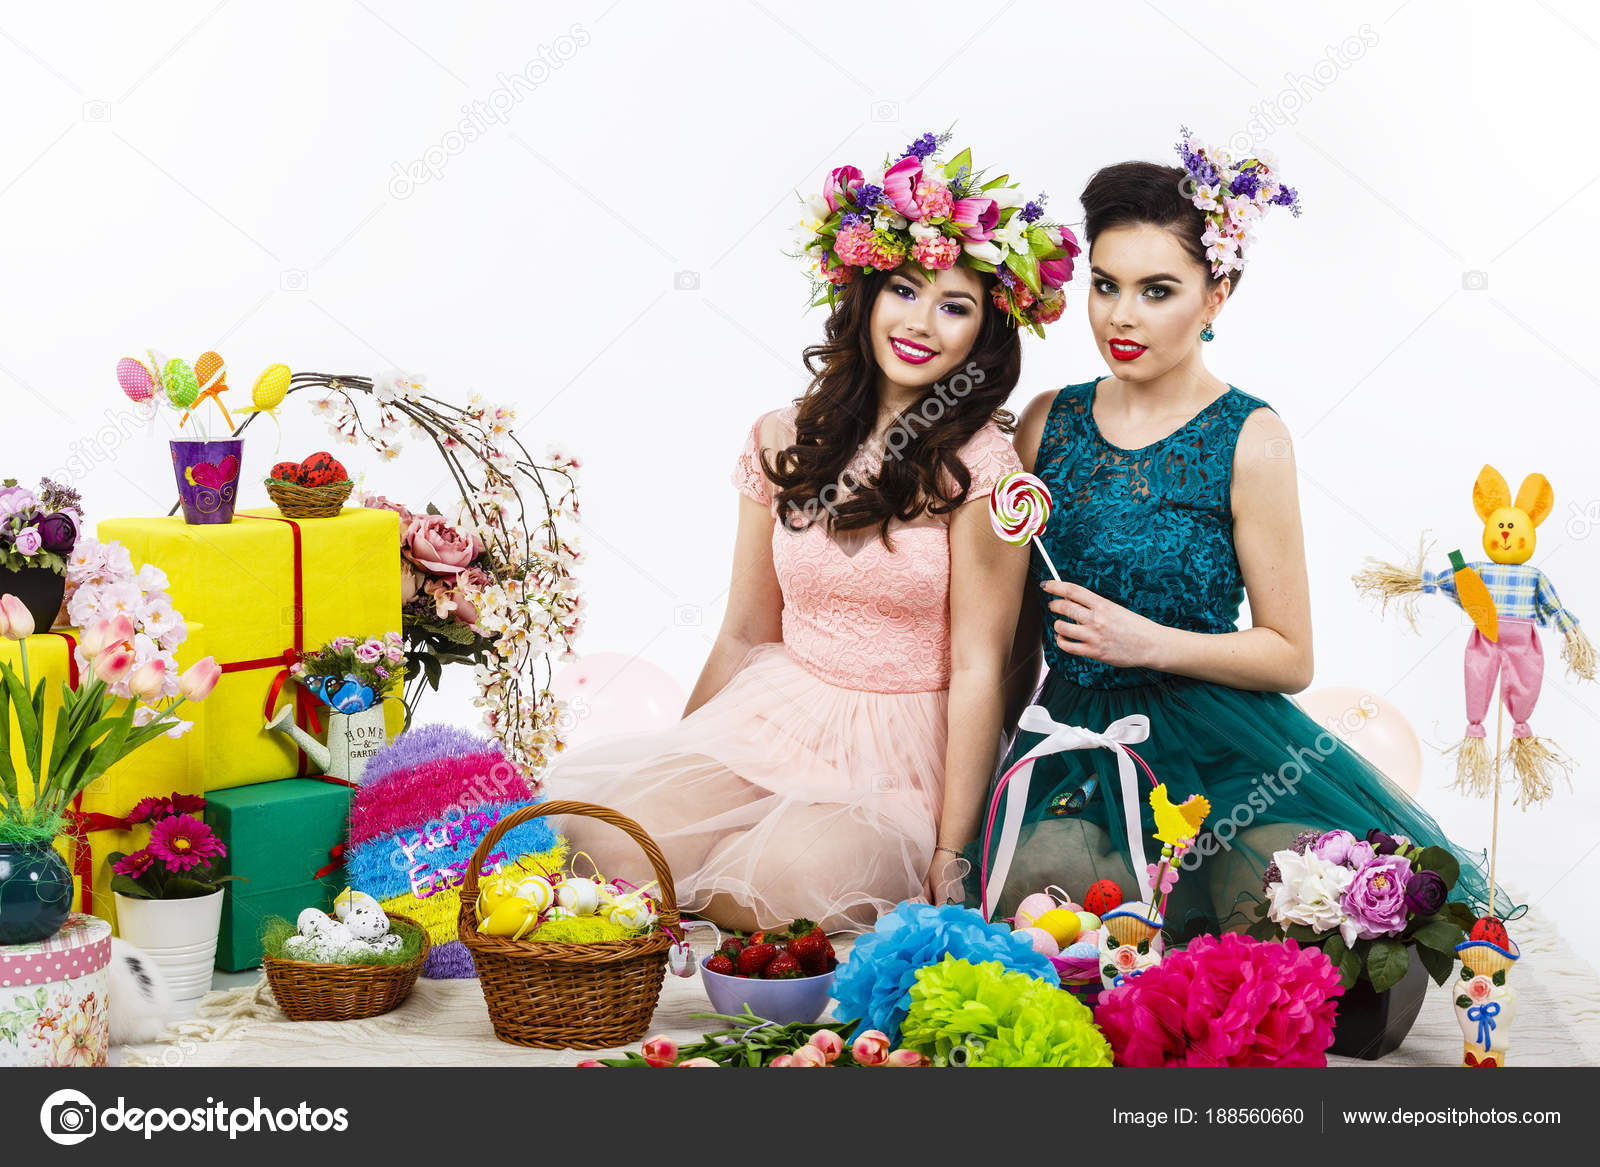 Two beautiful girlfriend girls basket with eggs and flower deco two beautiful girlfriend girls basket with eggs and flower decor style makeup and hairstyle enjoy the easter celebration photo by czamfir negle Images